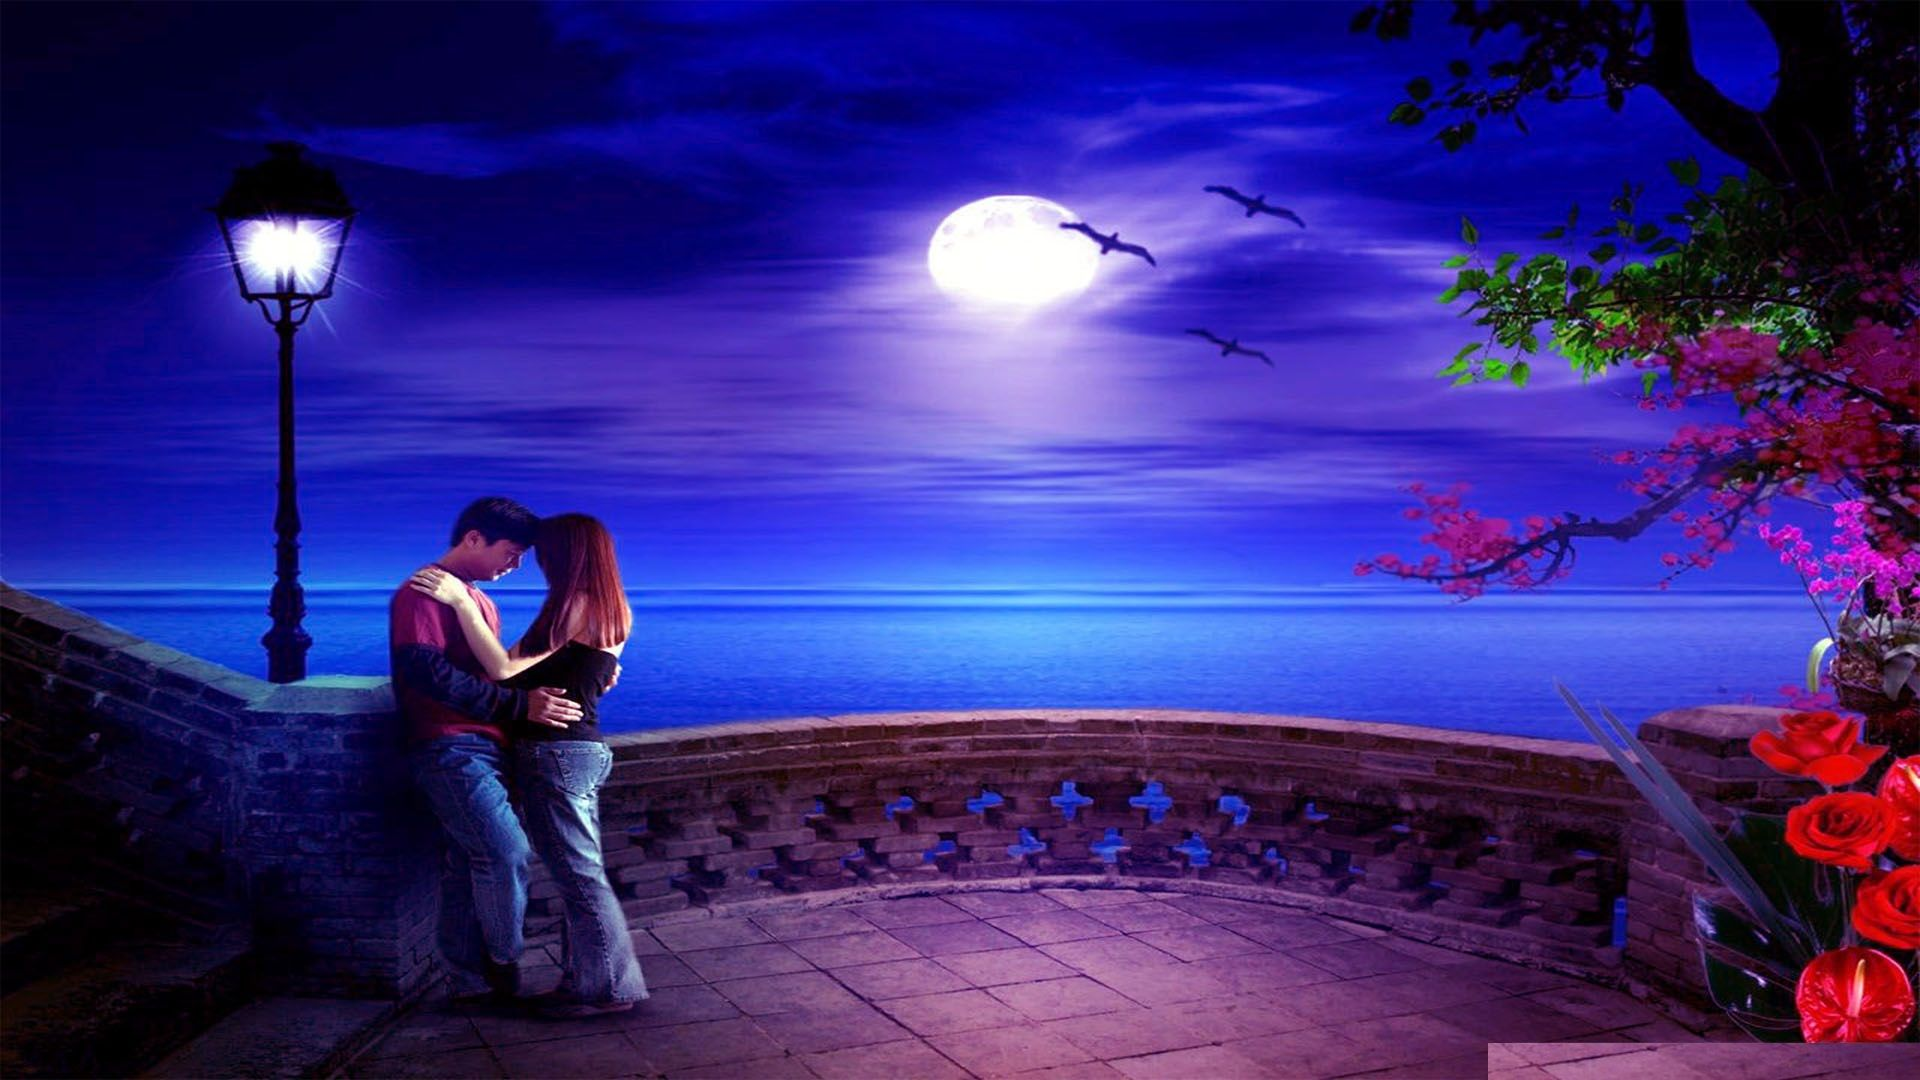 Love Wallpaper For Desktop Best : Romantic Love HD Wallpapers : Find best latest Romantic Love HD Wallpapers for your Pc desktop ...